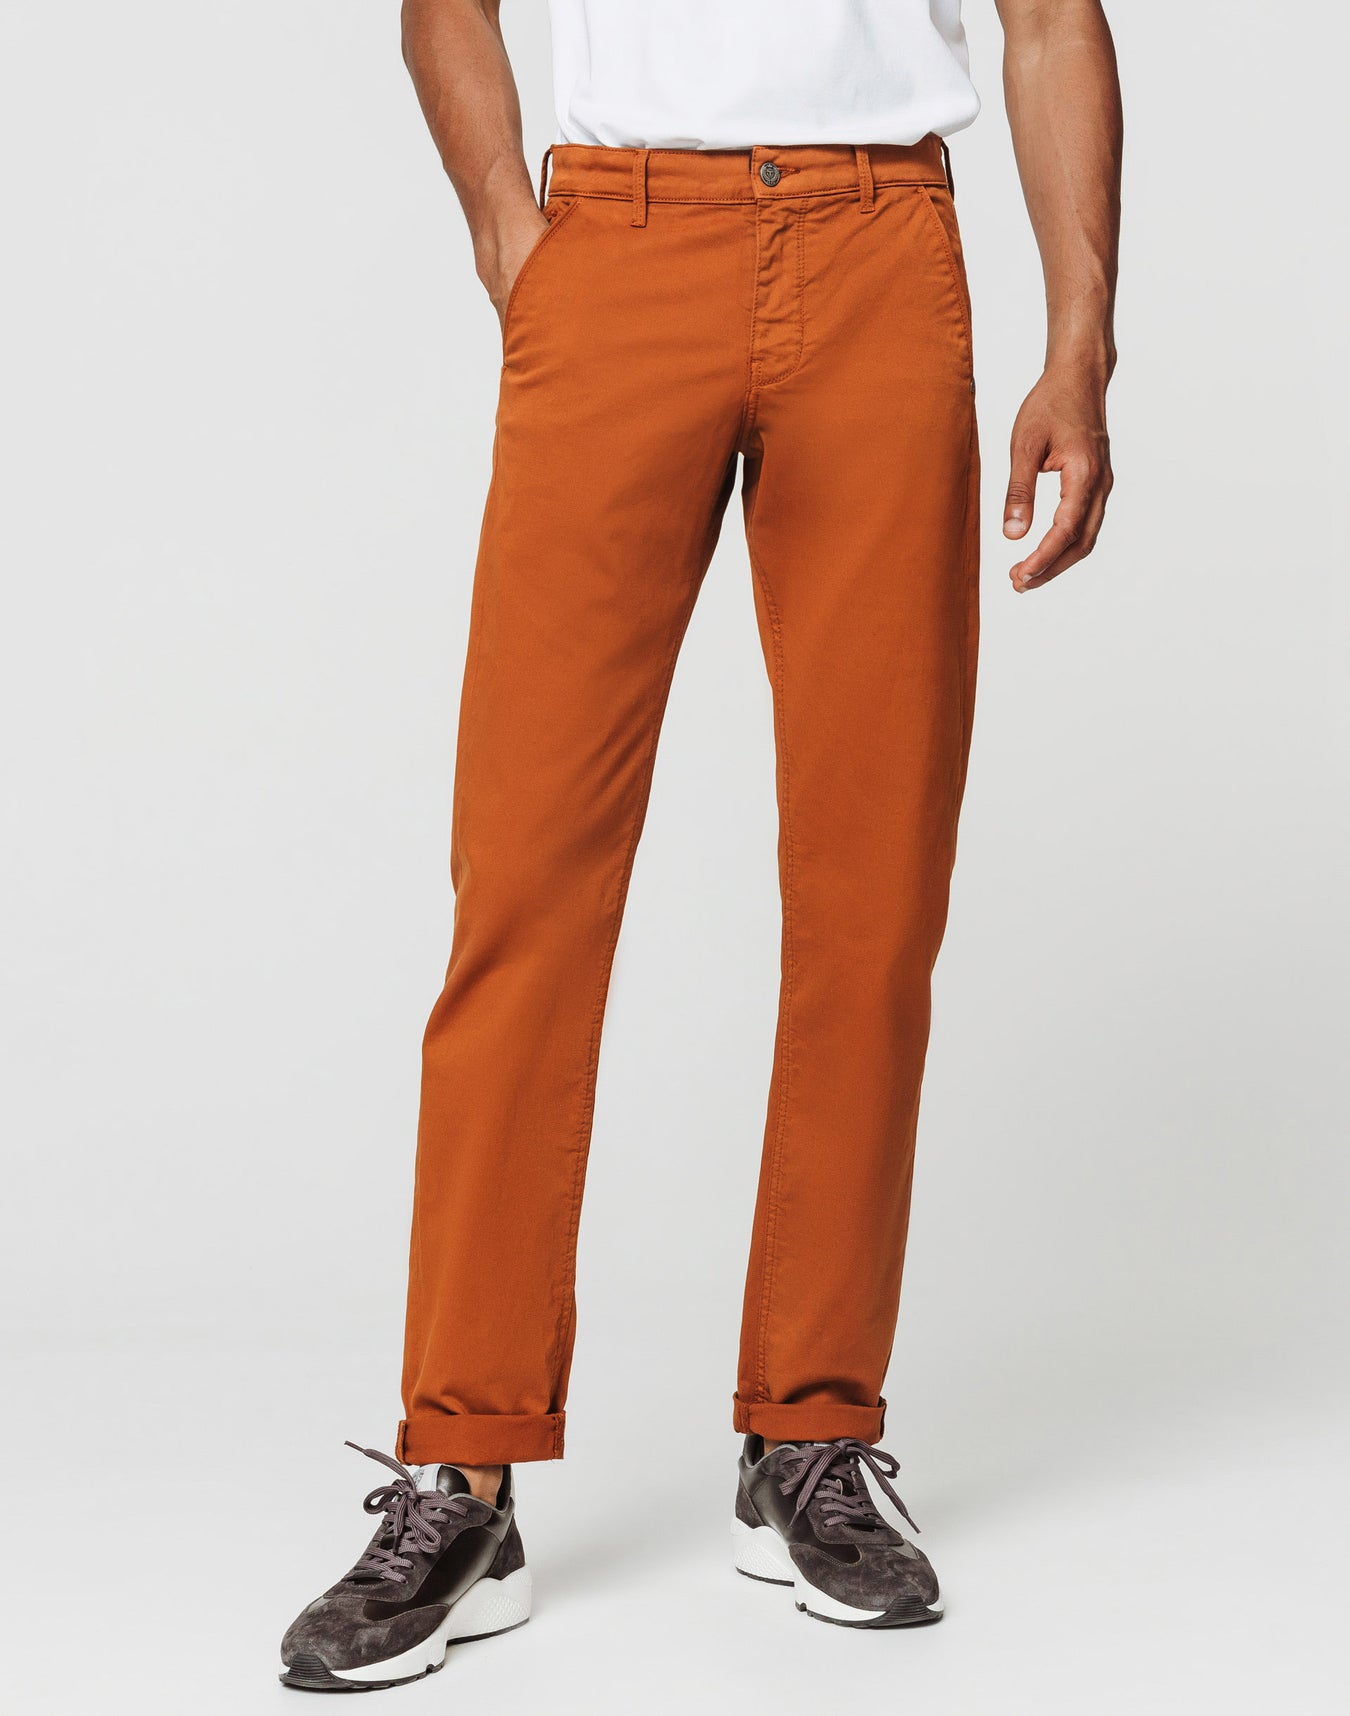 Chino fashion orange brûlé